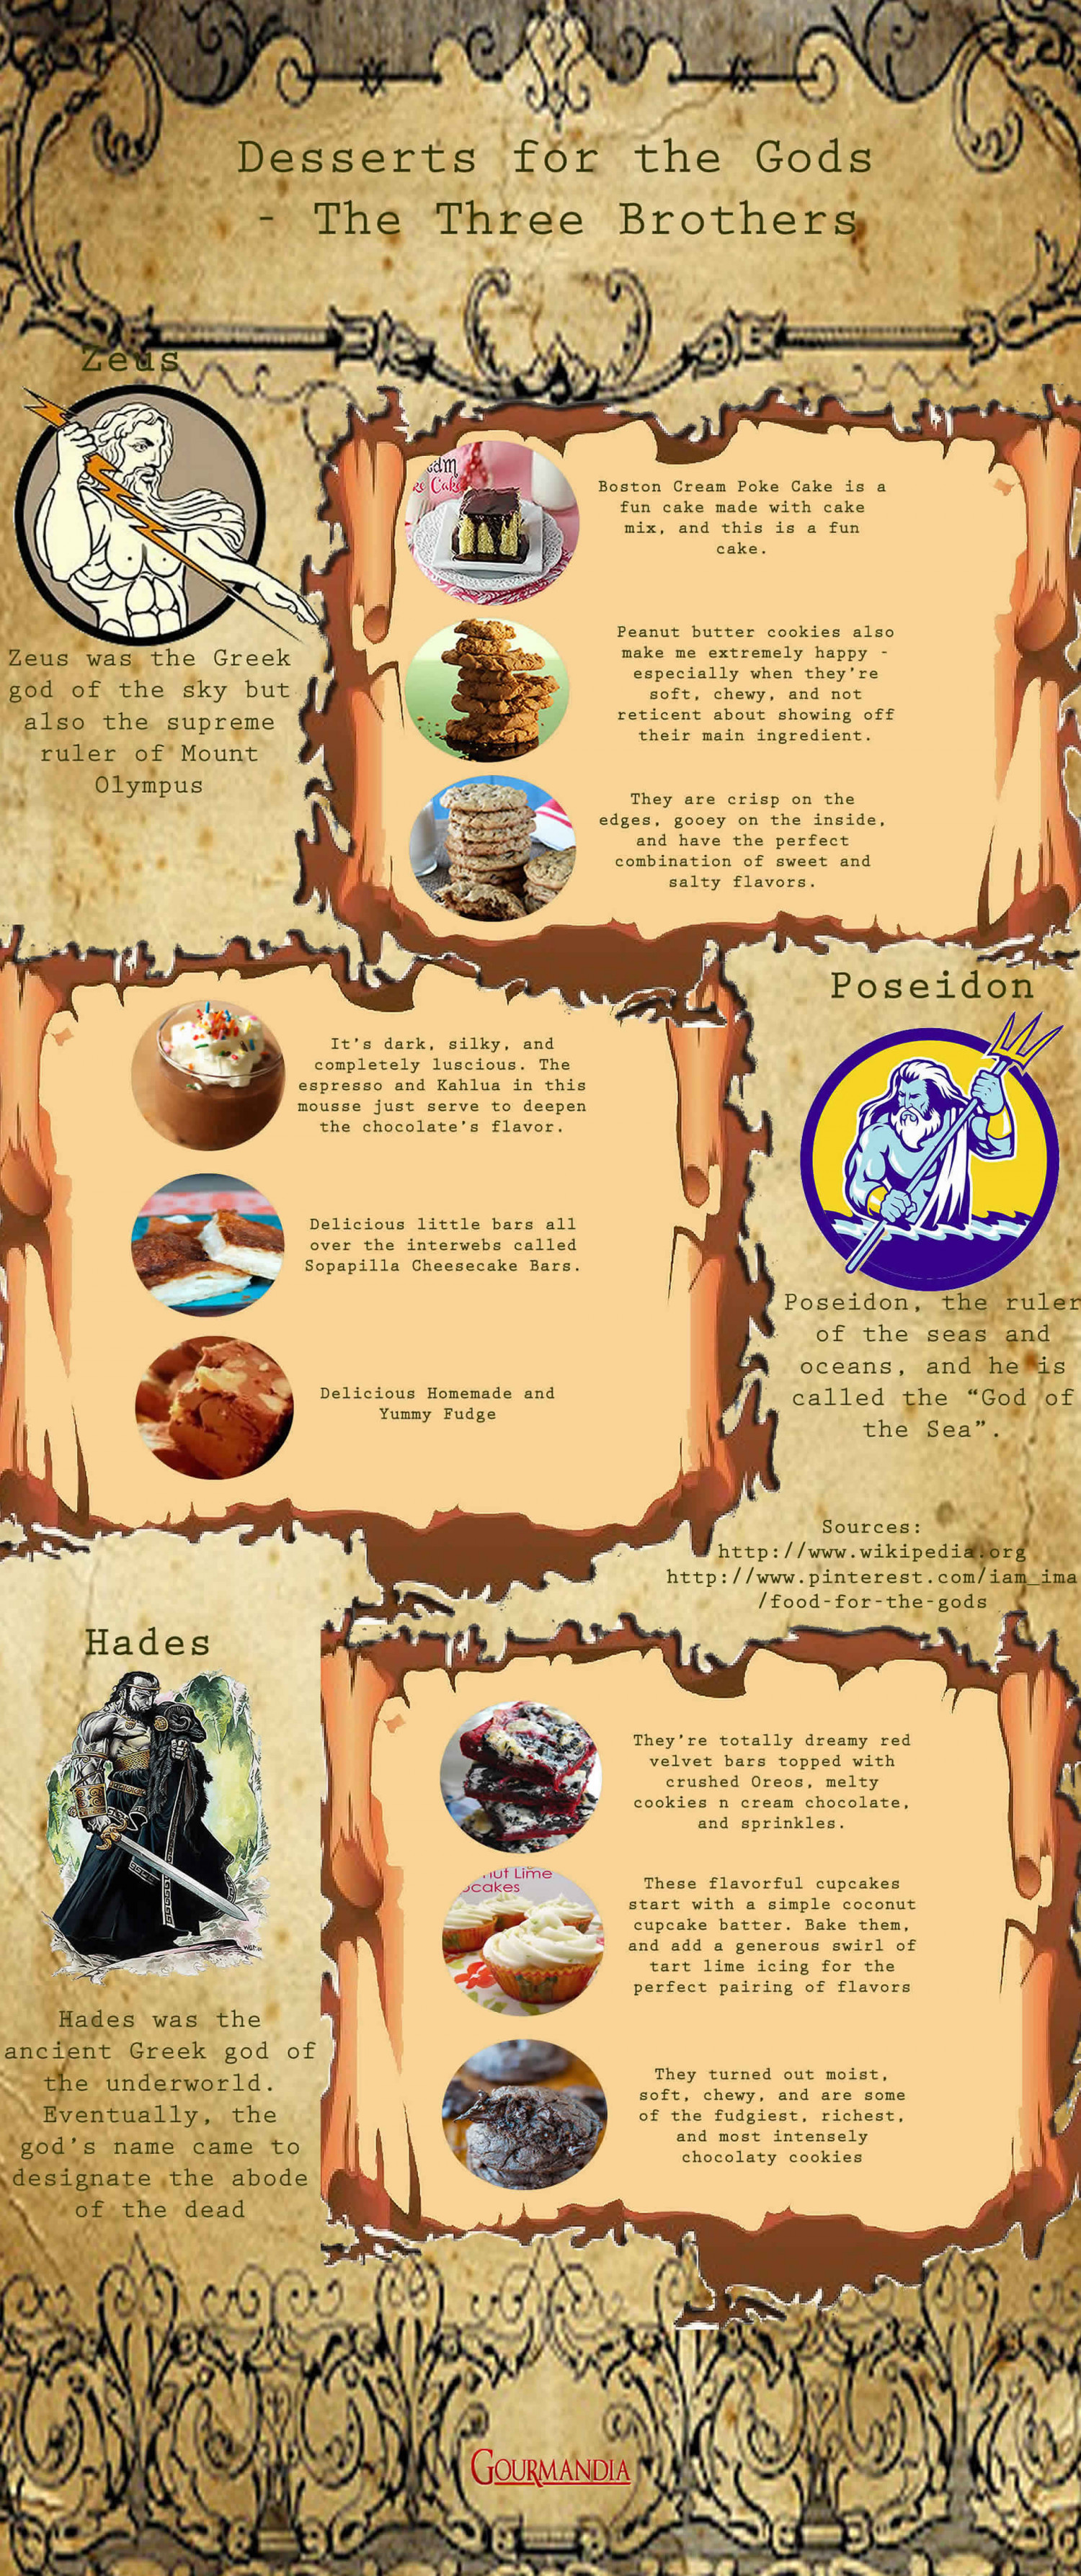 Desserts for the Gods - The Three Brothers Infographic